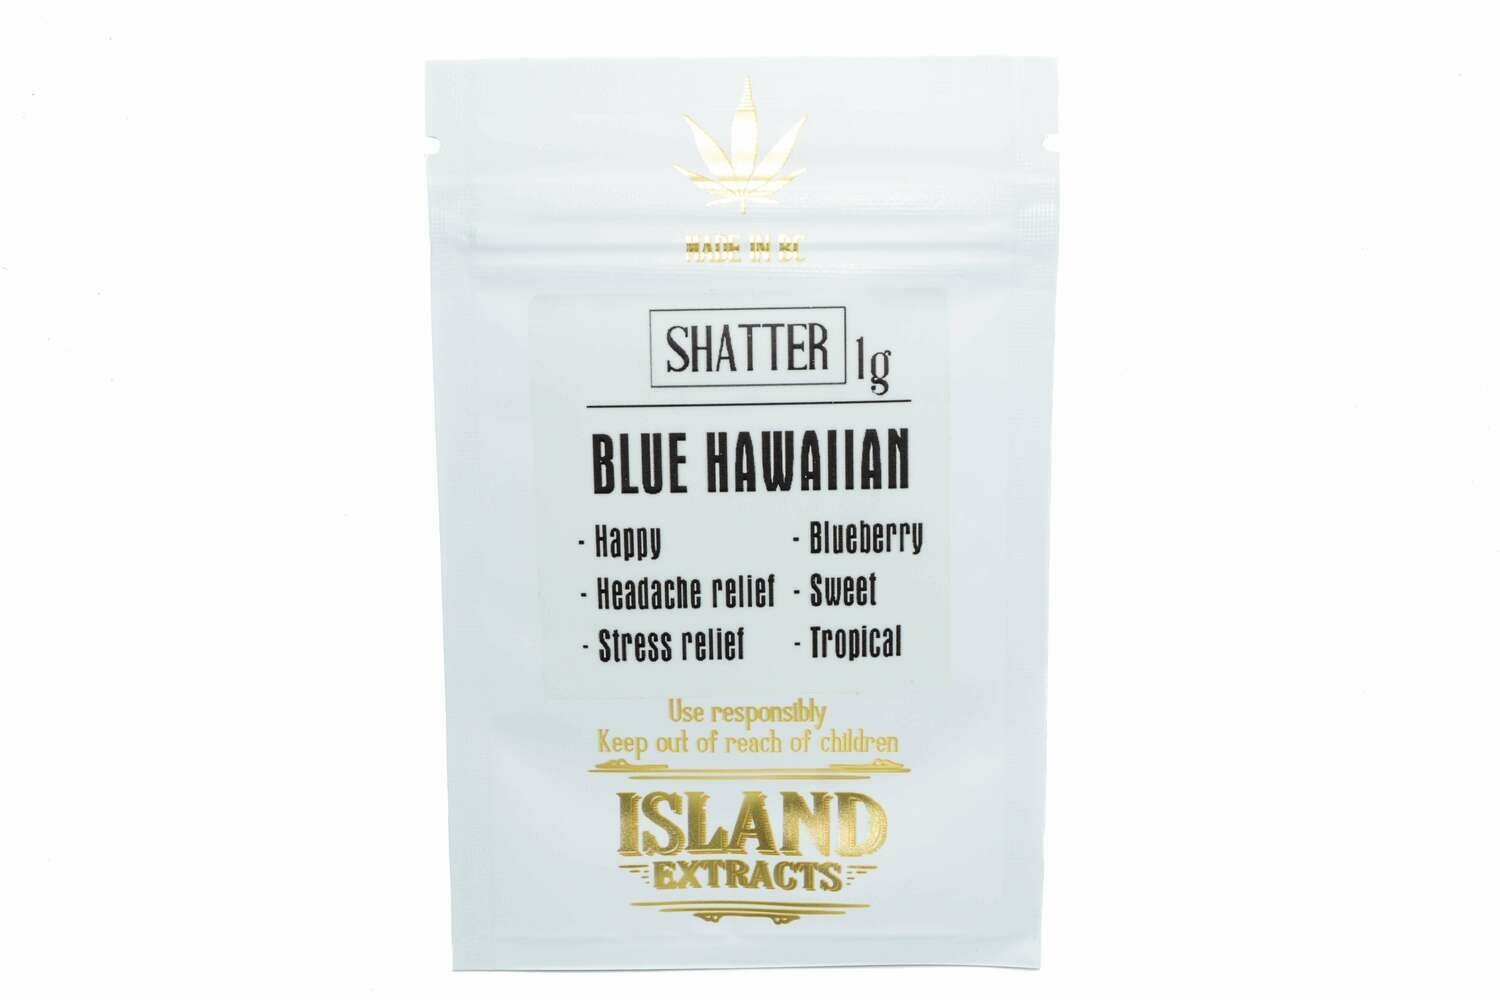 Blue Hawaiian Shatter (1g) by Island Extracts